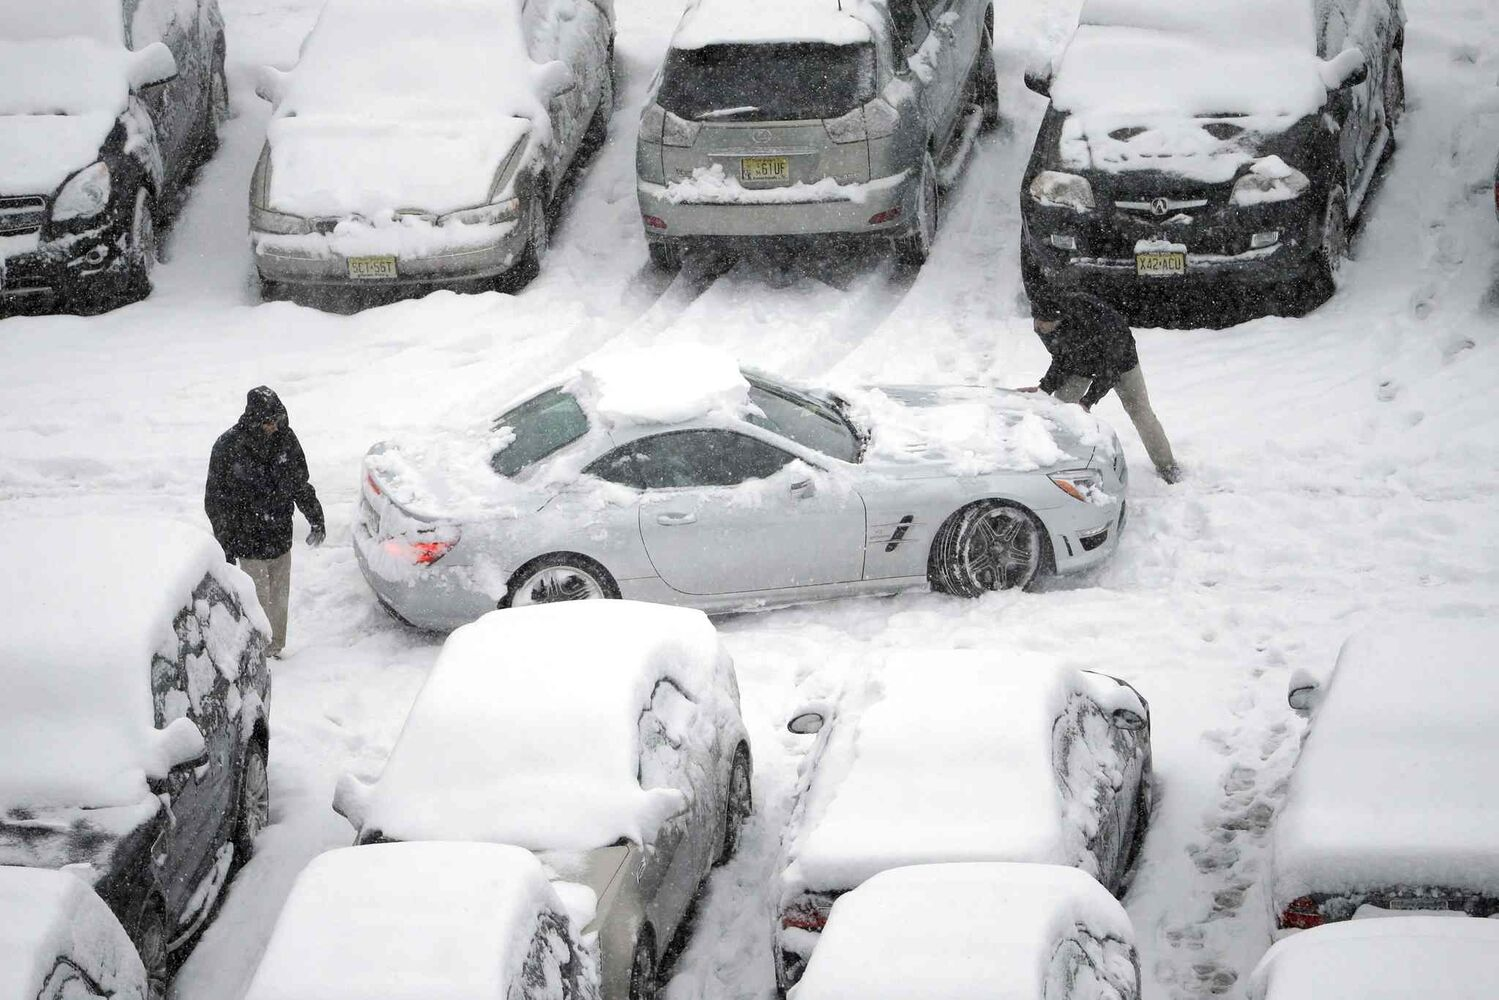 Snow-covered cars occupy a parking lot at Lincoln Financial Field in Philadelphia on Sunday. (Matt Rourke / The Associated Press)